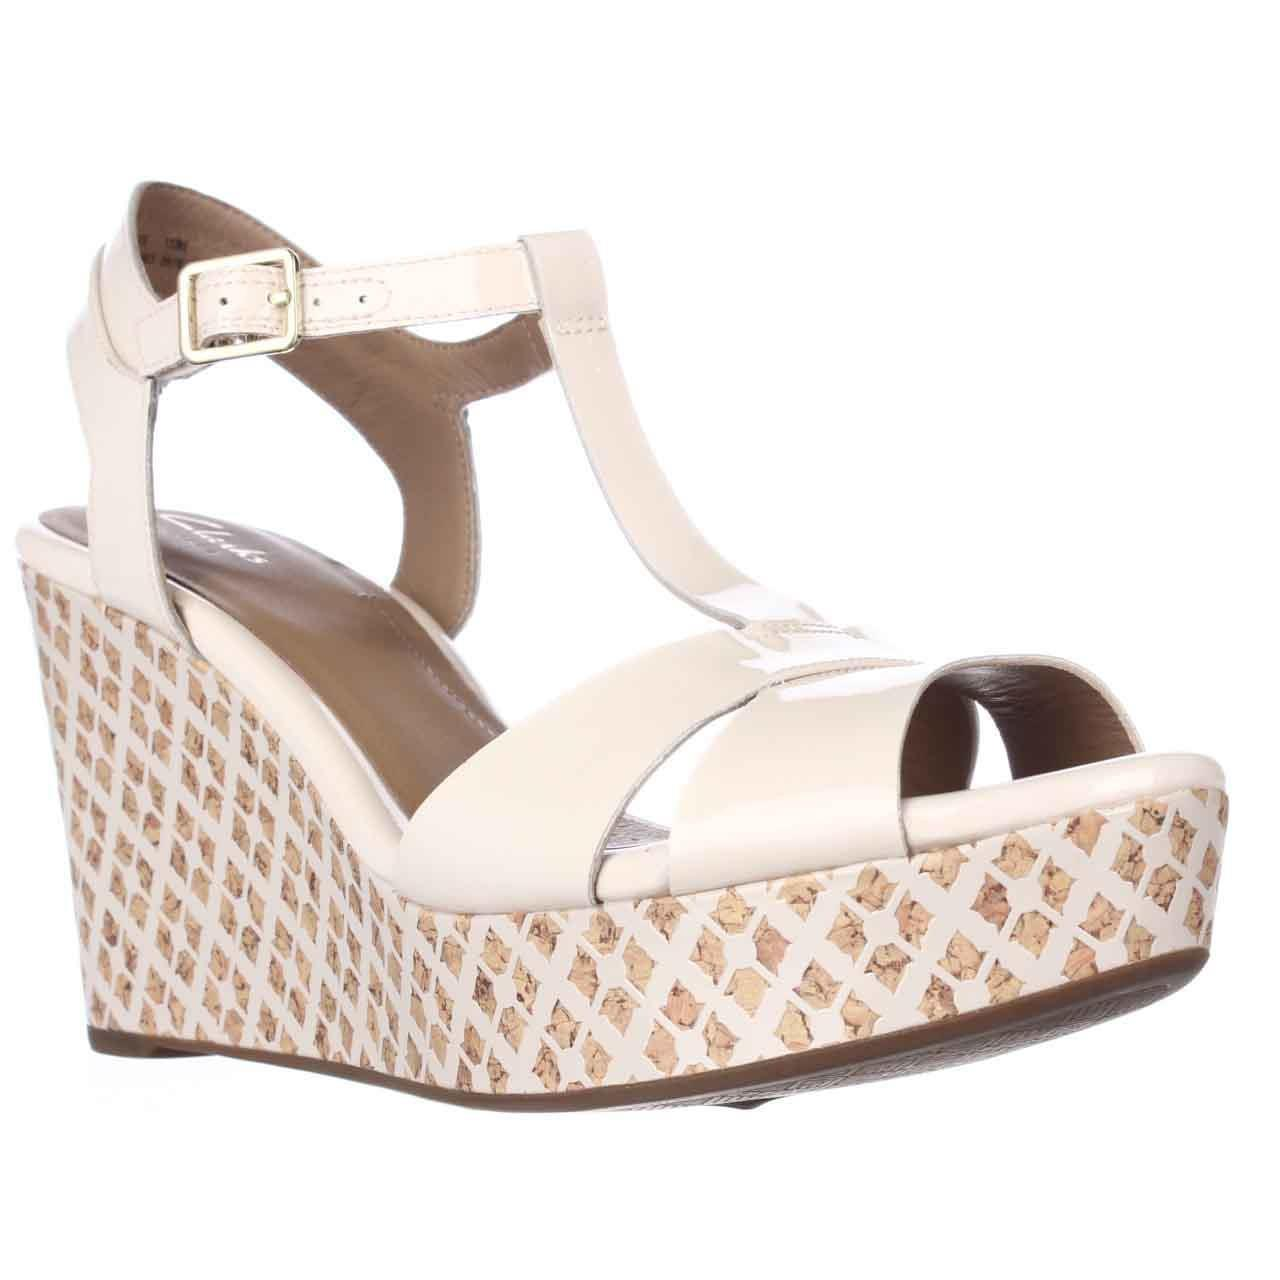 200a16d9f9d Lyst - Clarks Amelia Roma Wedge T-strap Sandals in Natural